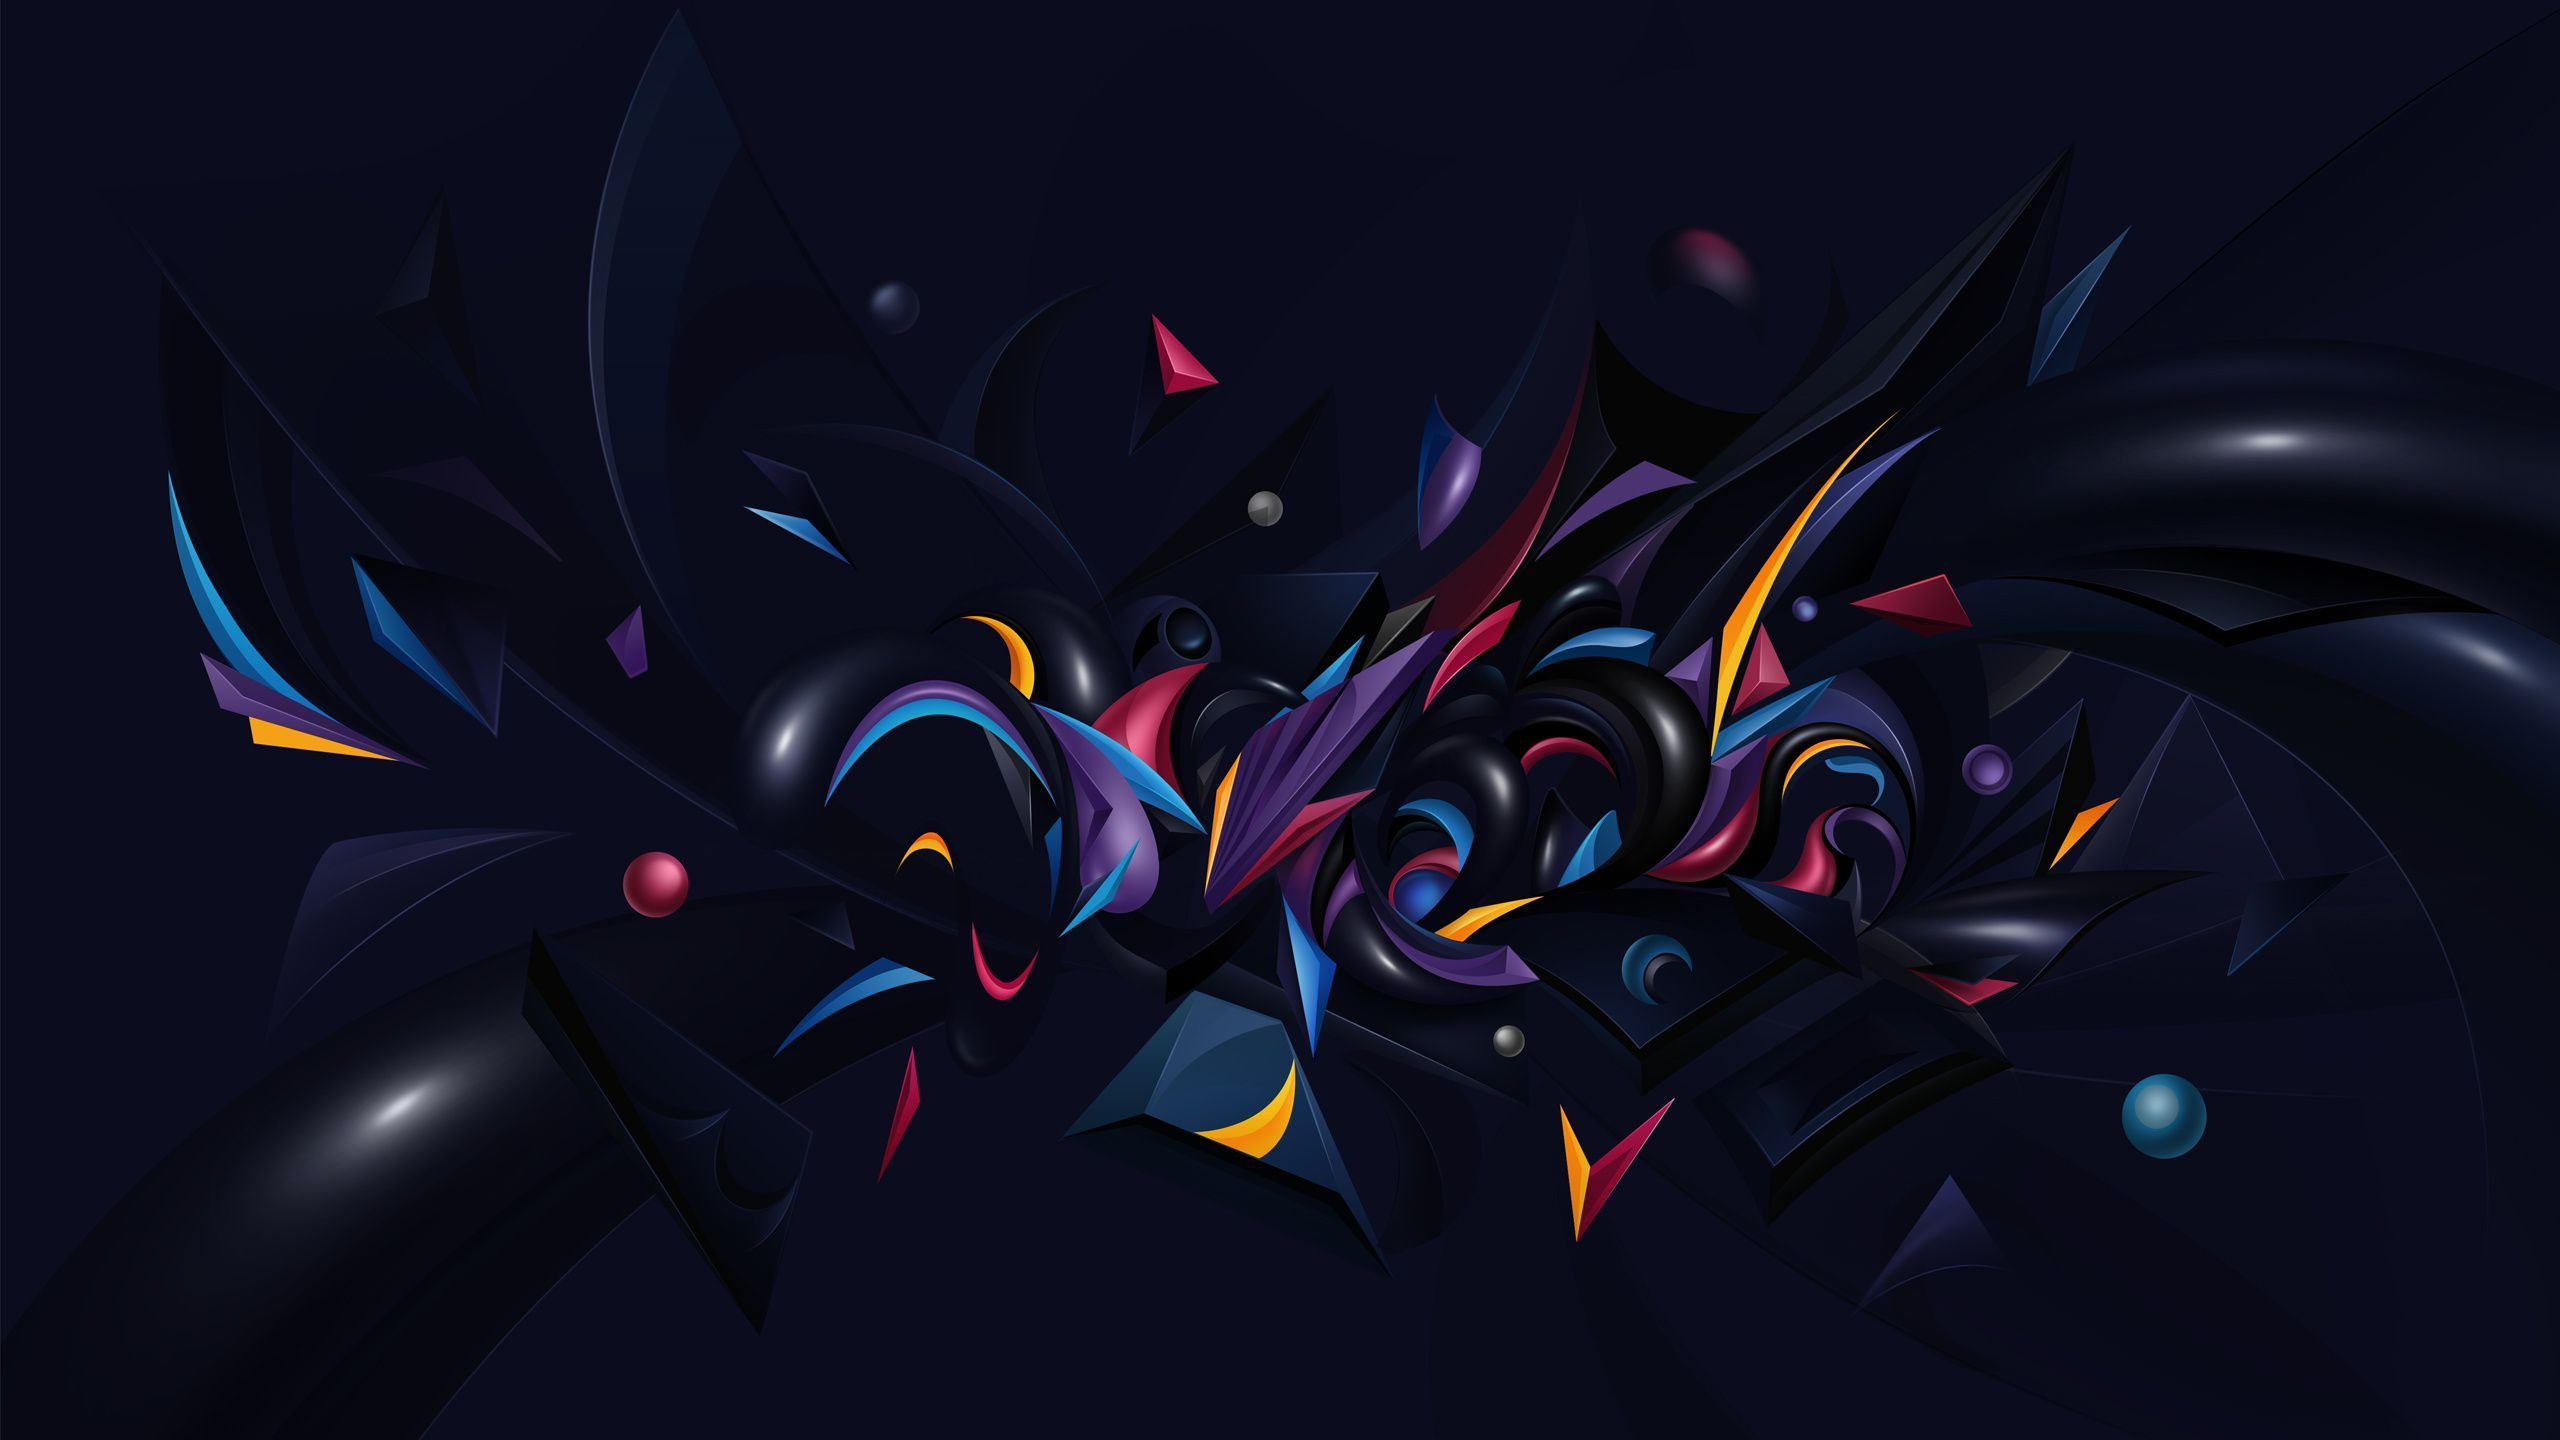 Wallpapers Abstractos Hd 3d 3d Abstract Pinterest 3d And